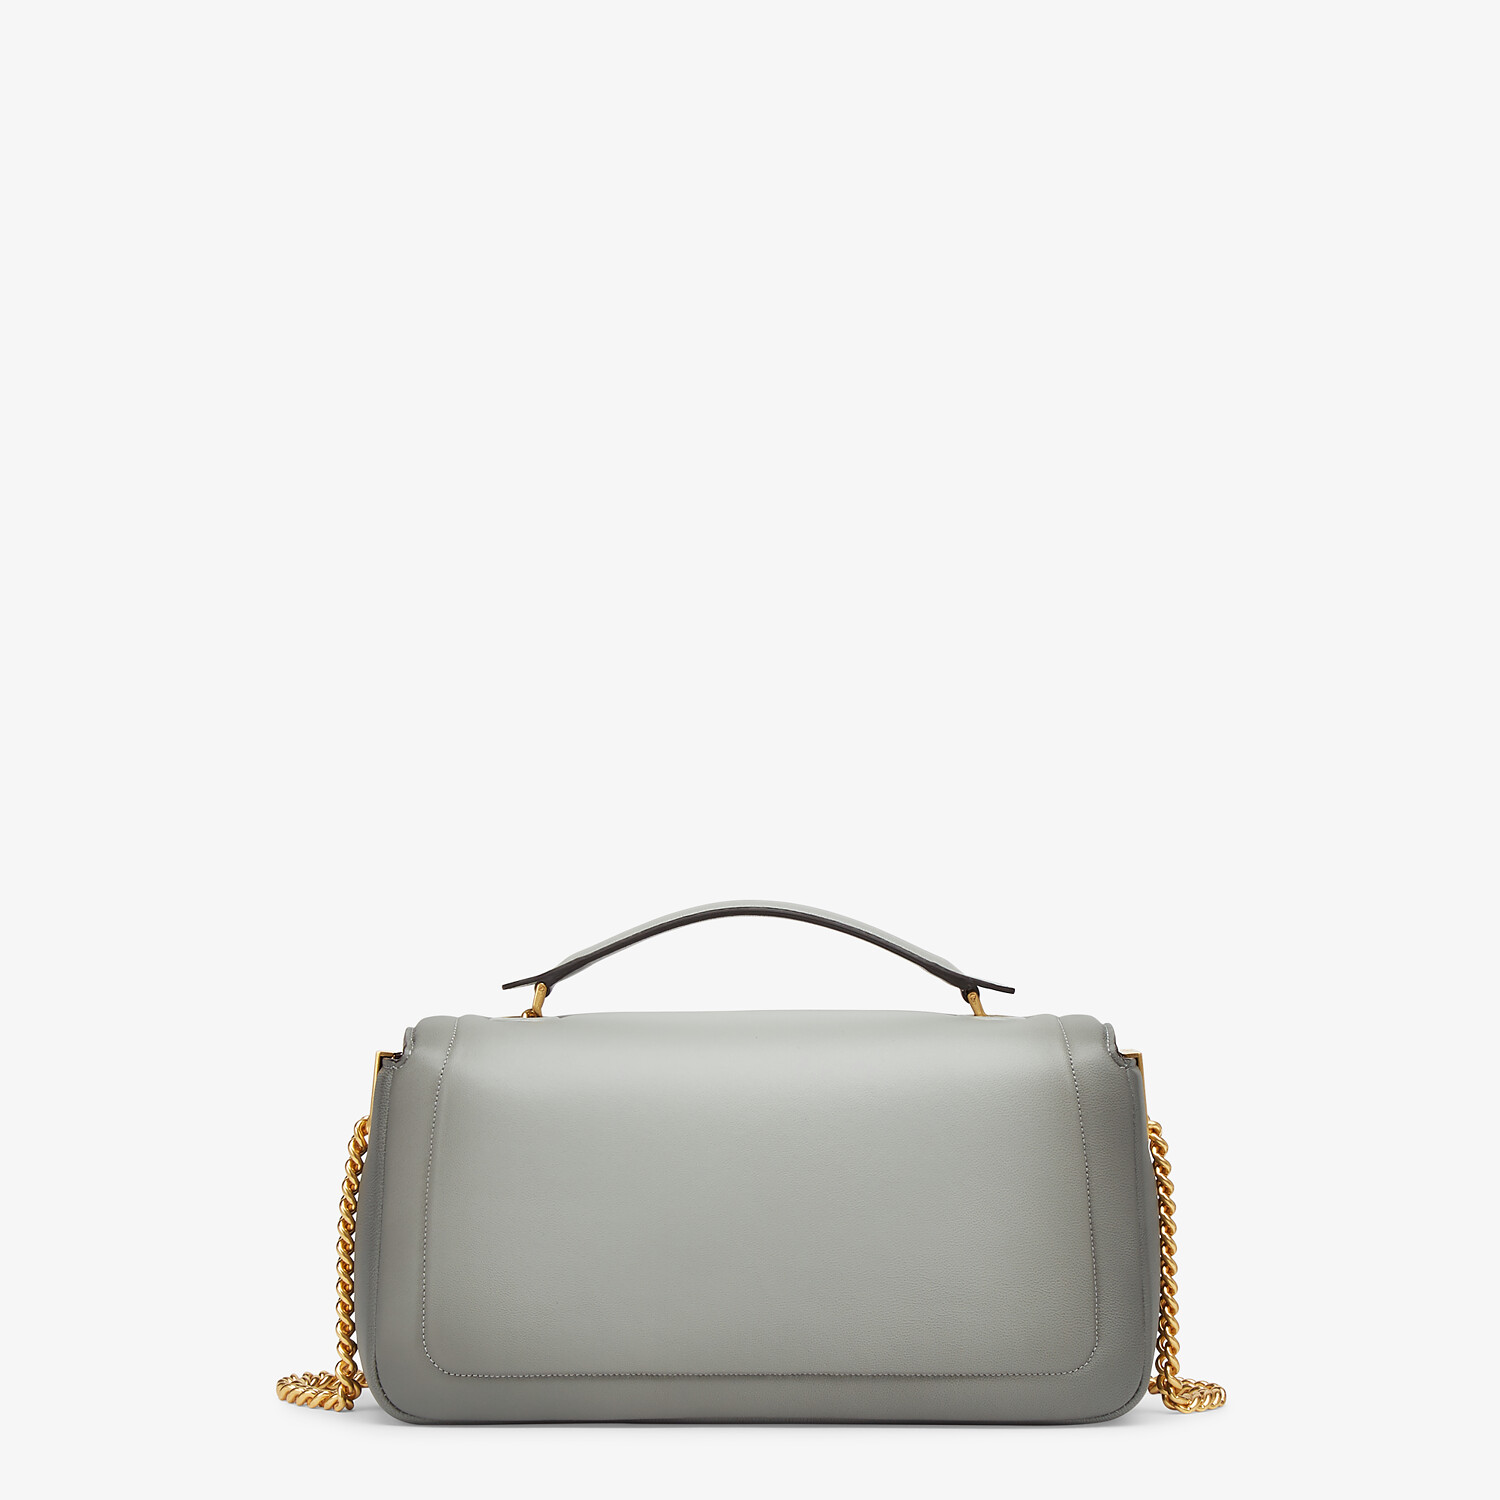 FENDI BAGUETTE CHAIN - gray nappa leather bag - view 3 detail